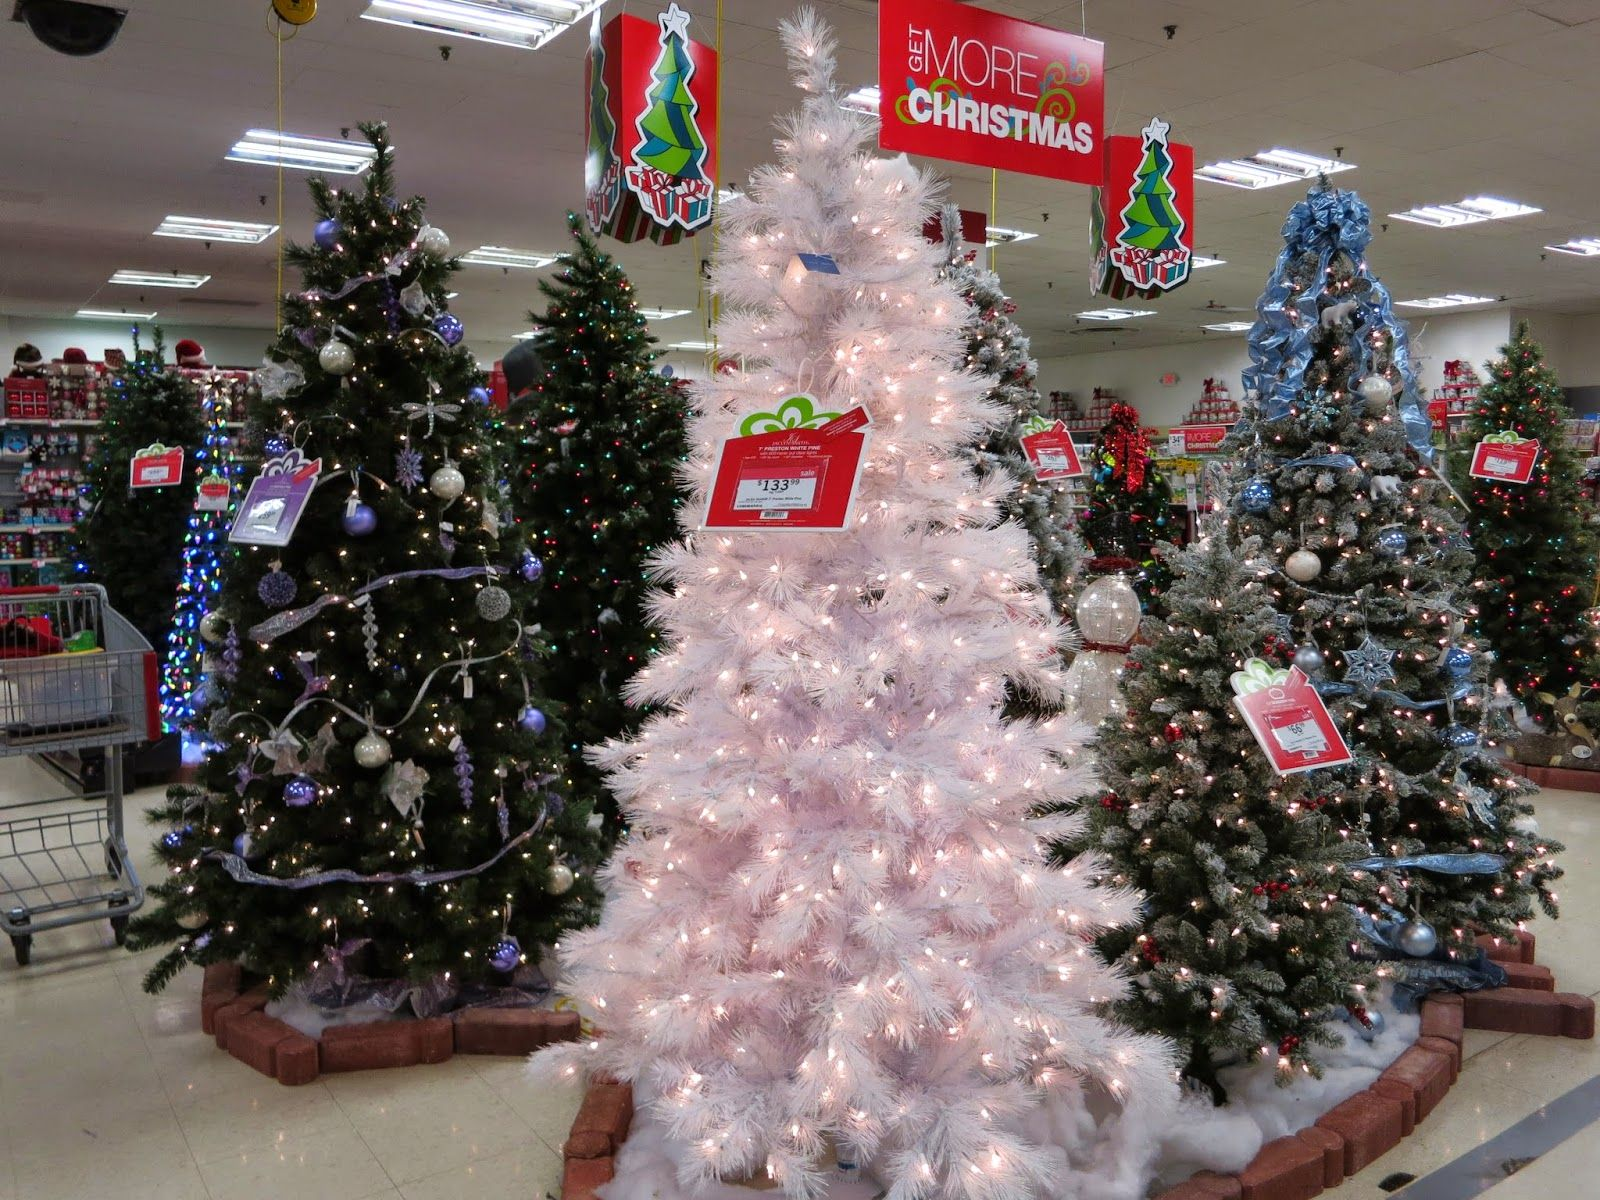 Decorating You Home For The Holidays With Kmart Get The Best Decorations For Less Look At T Kmart Christmas Trees Holiday Decor Christmas Pink Christmas Tree